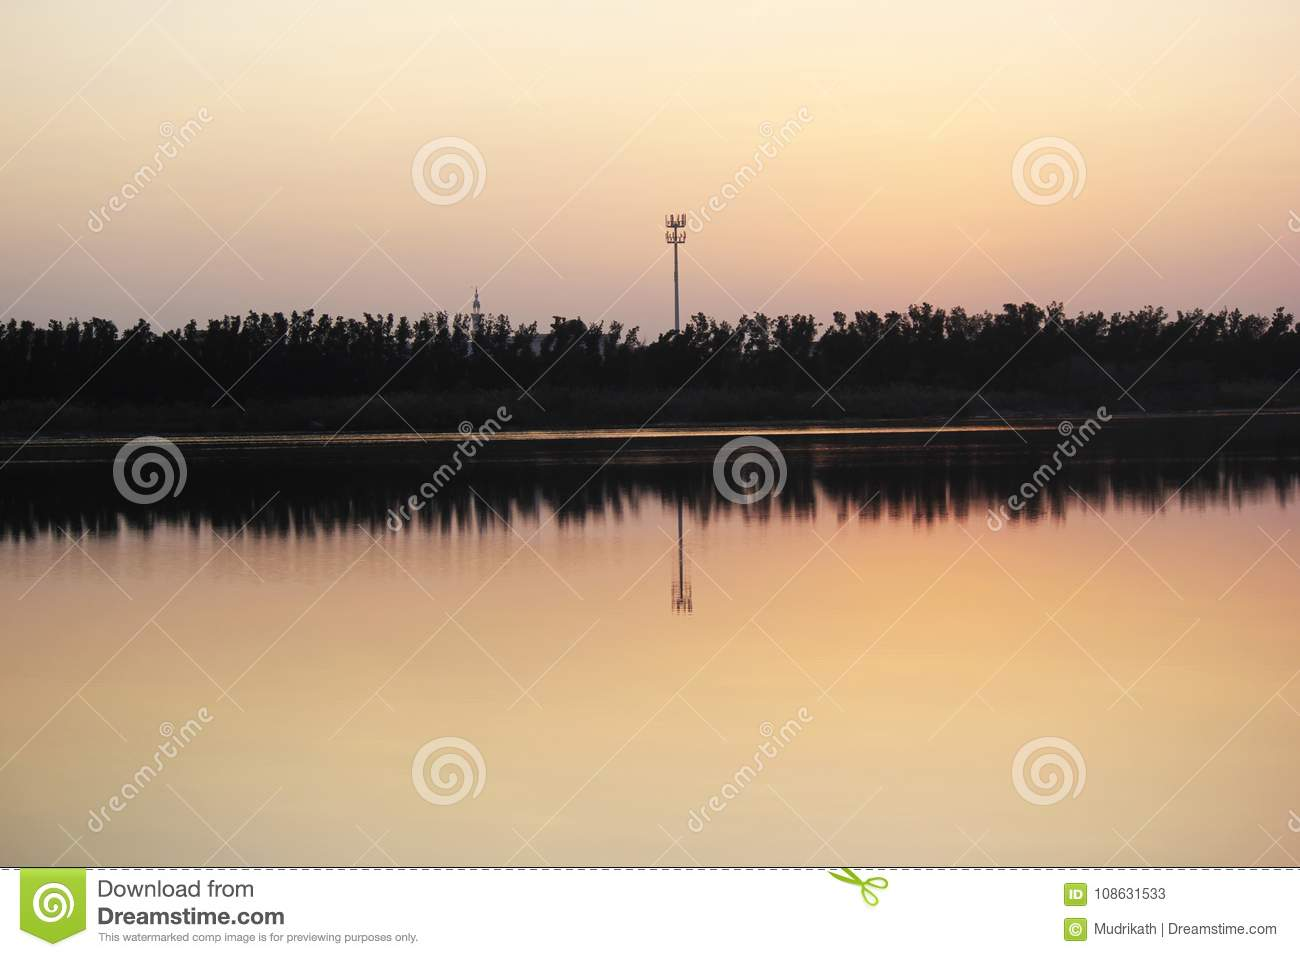 Beautiful nature scenery of water, trees and sky shadows in the water.